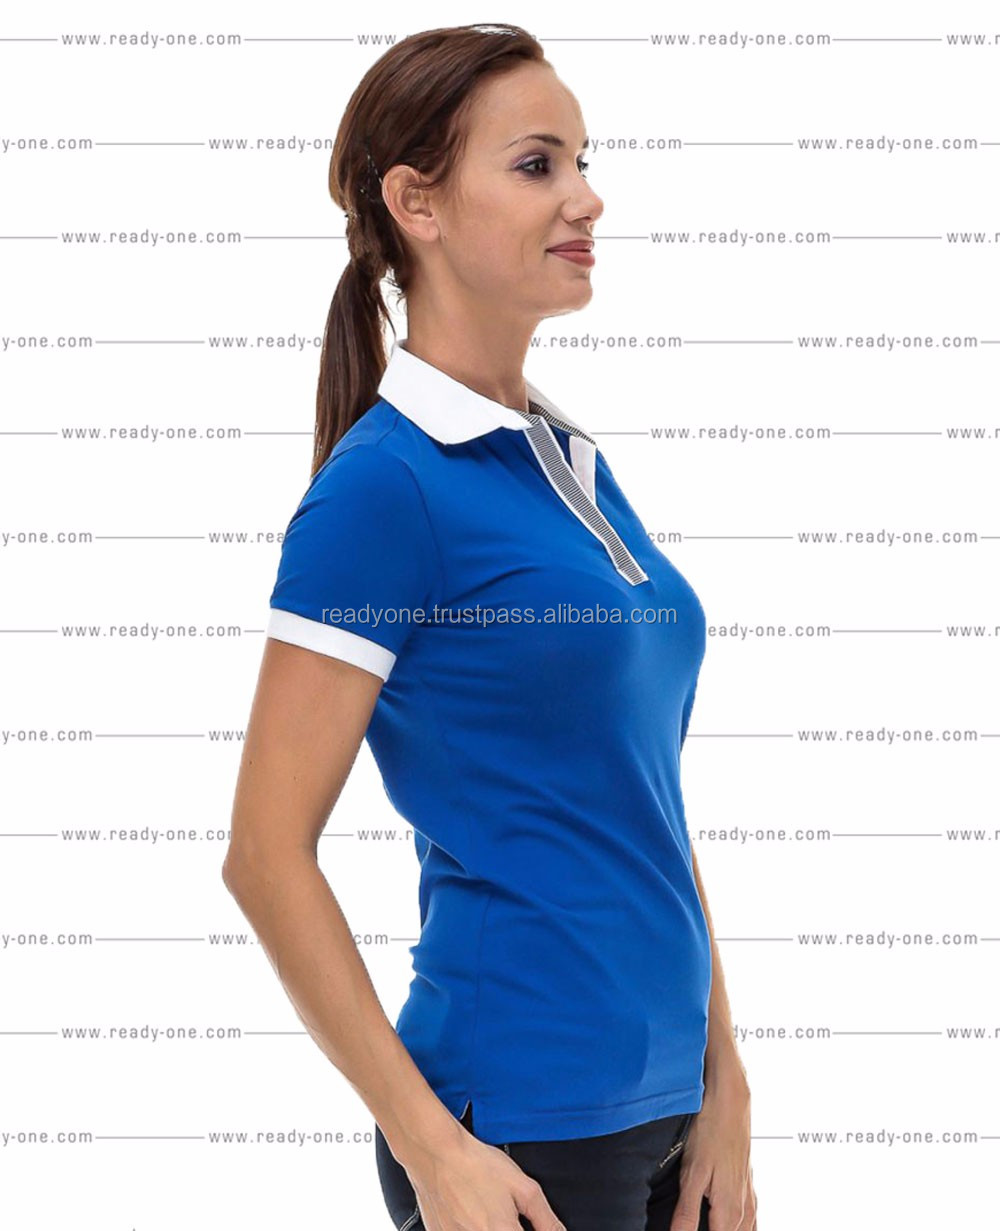 Womens ladies dri fit polo shirt made in buy oem for Women s dri fit polo shirts wholesale